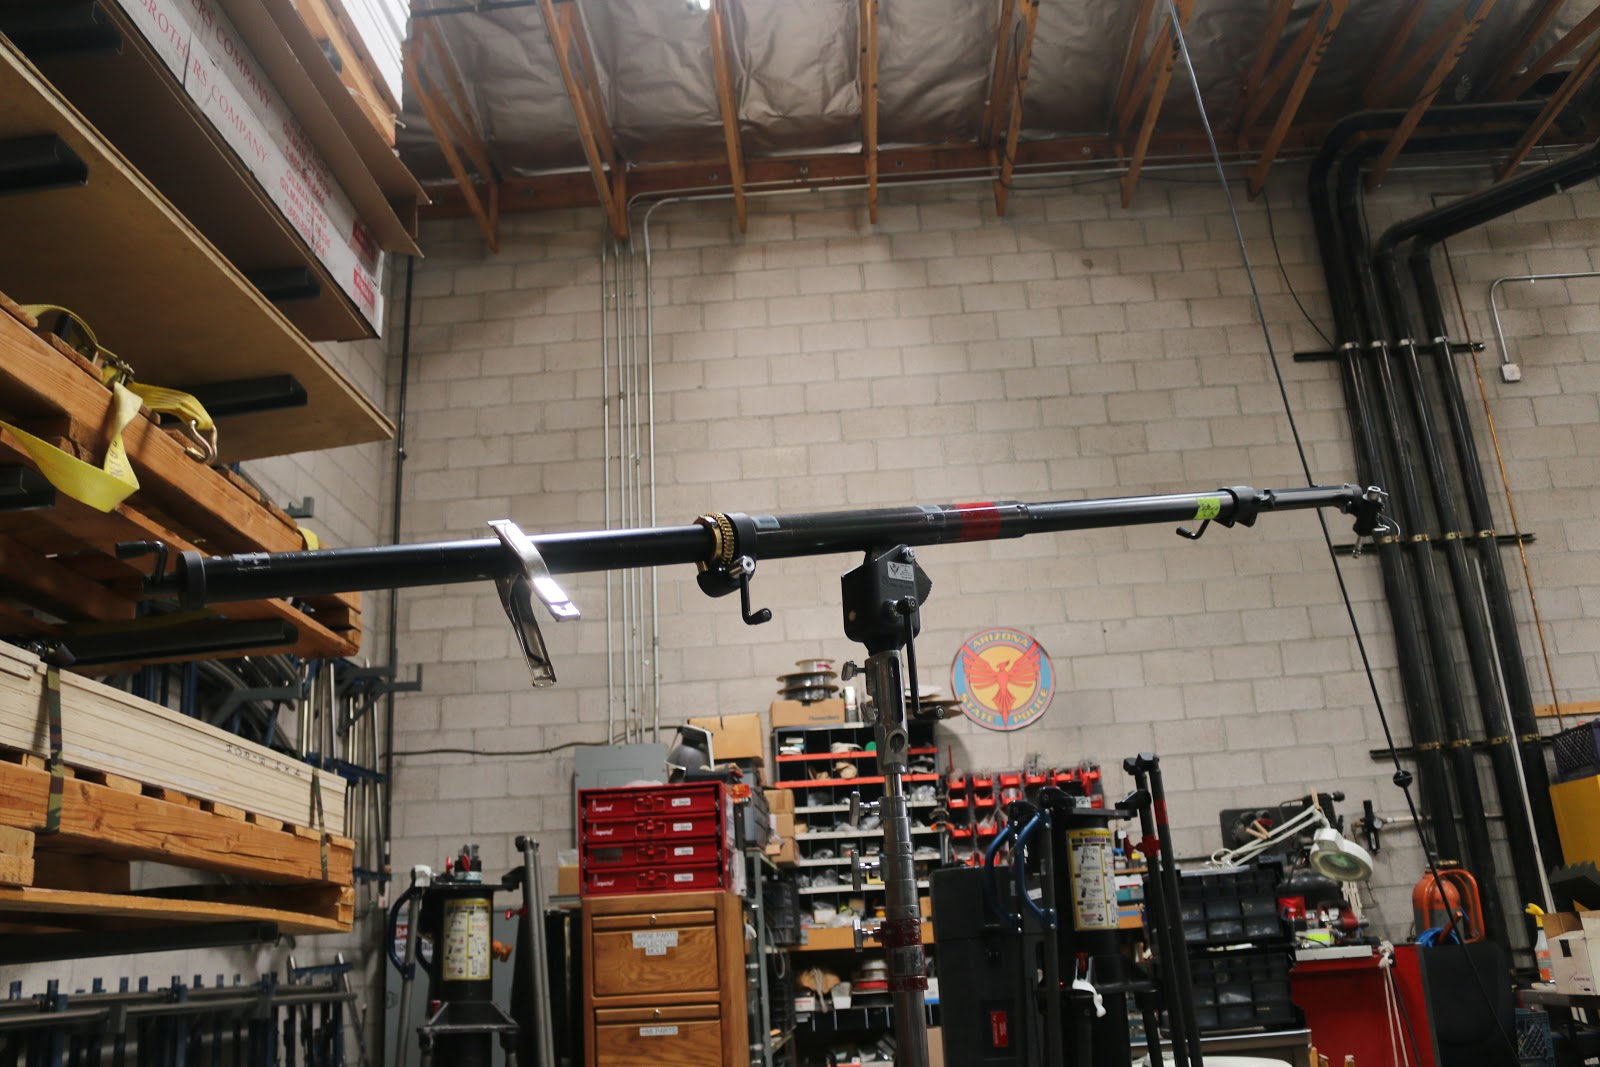 5 Reasons To Use A Mega Boom Instead Of Menace Arm